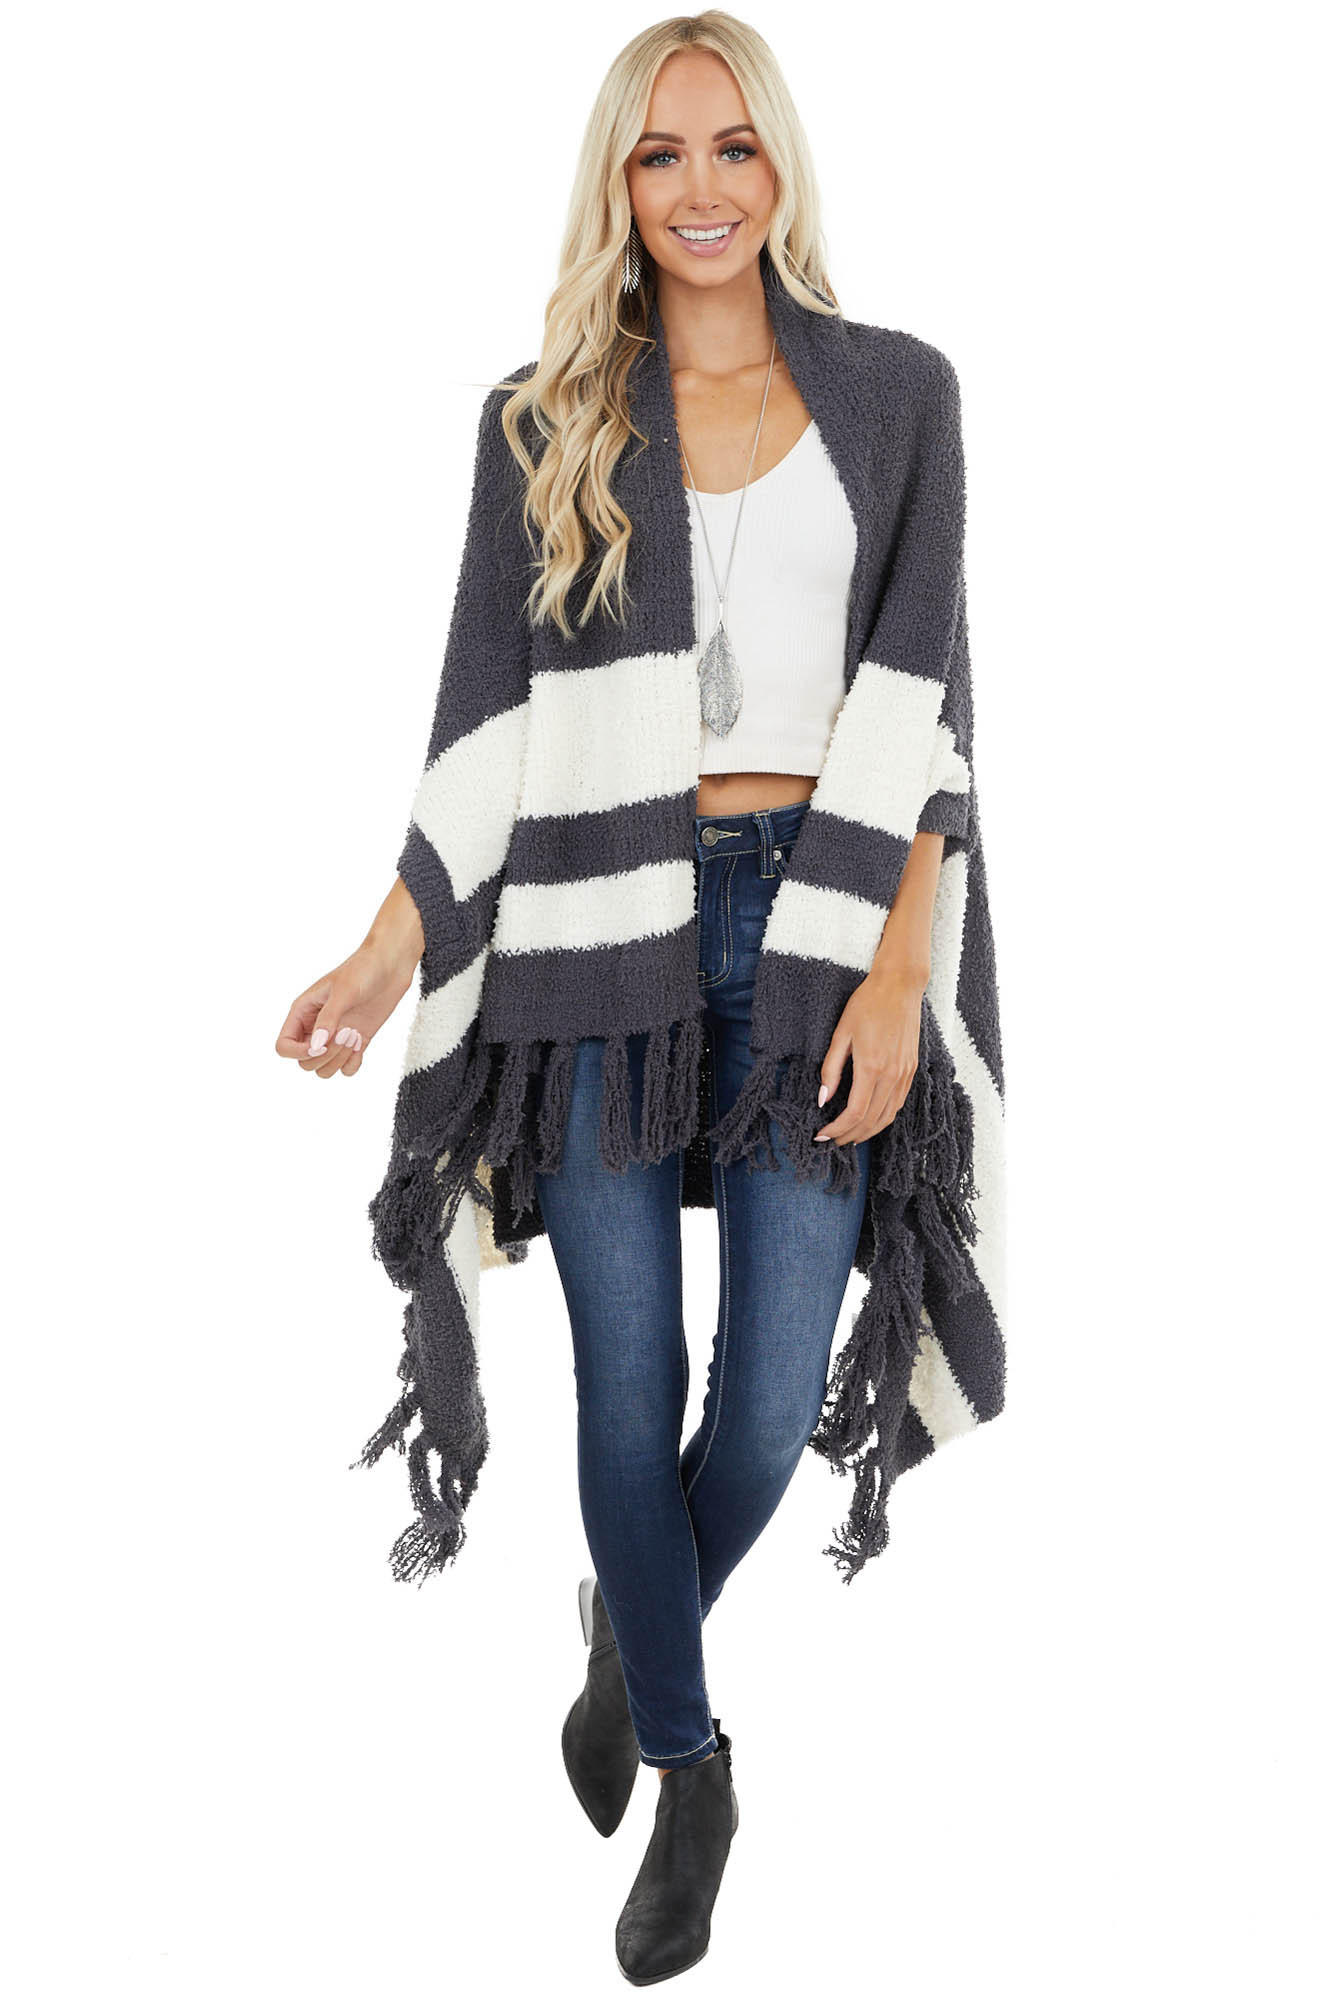 Charcoal Super Soft Poncho with Stripes and Fringe Details